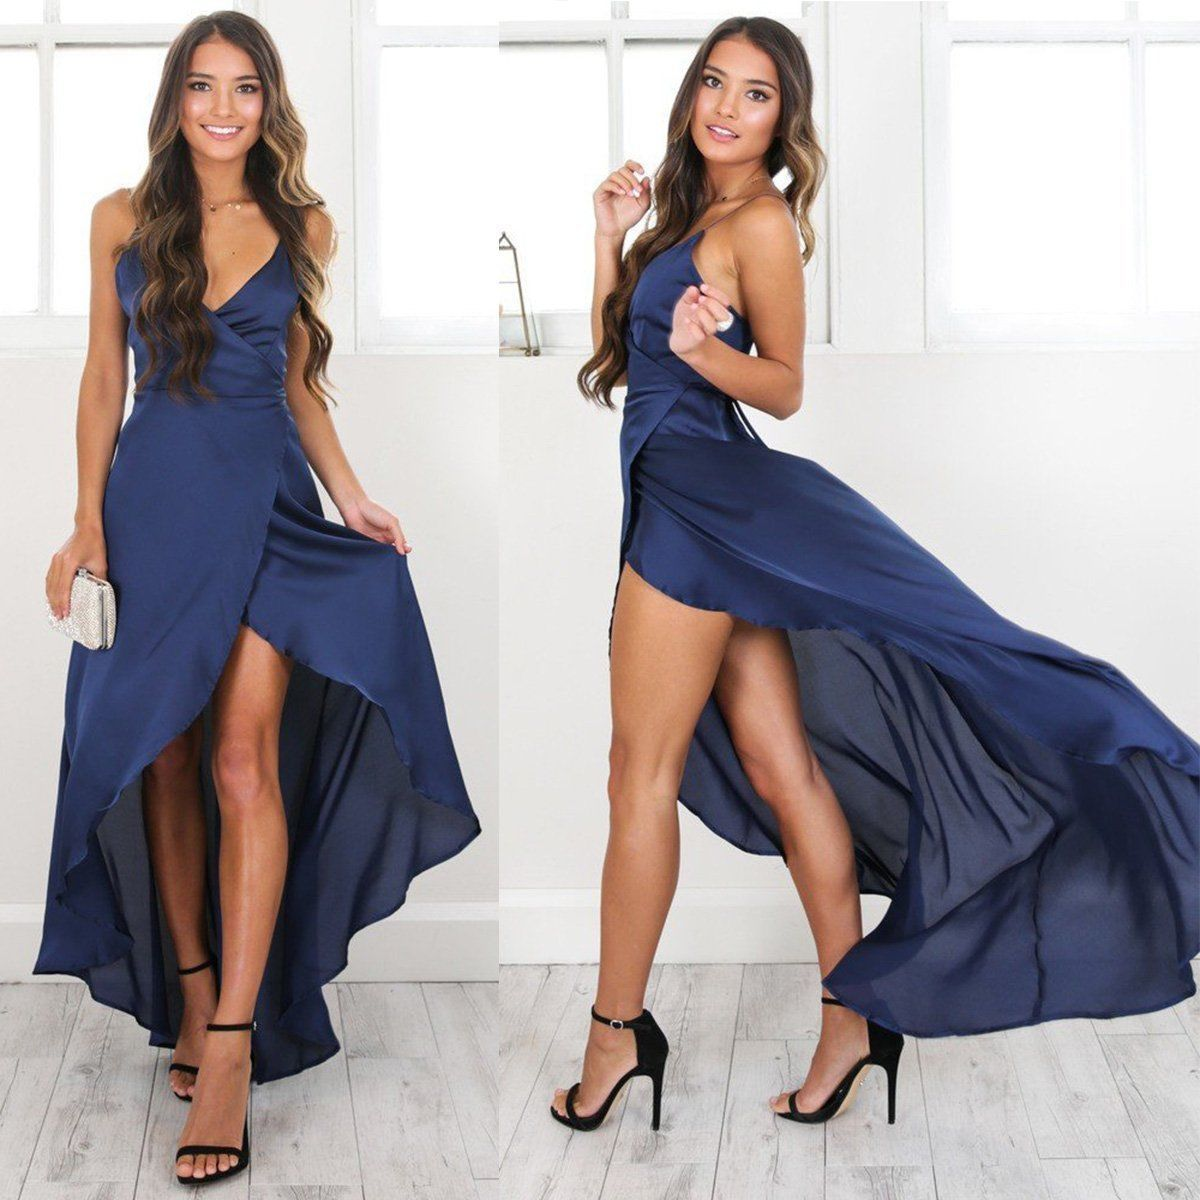 10 1. 10 1. Previous. Women Formal Long Ball Gown Party Prom Cocktail  Wedding Bridesmaid Evening Dress 8a8537da1